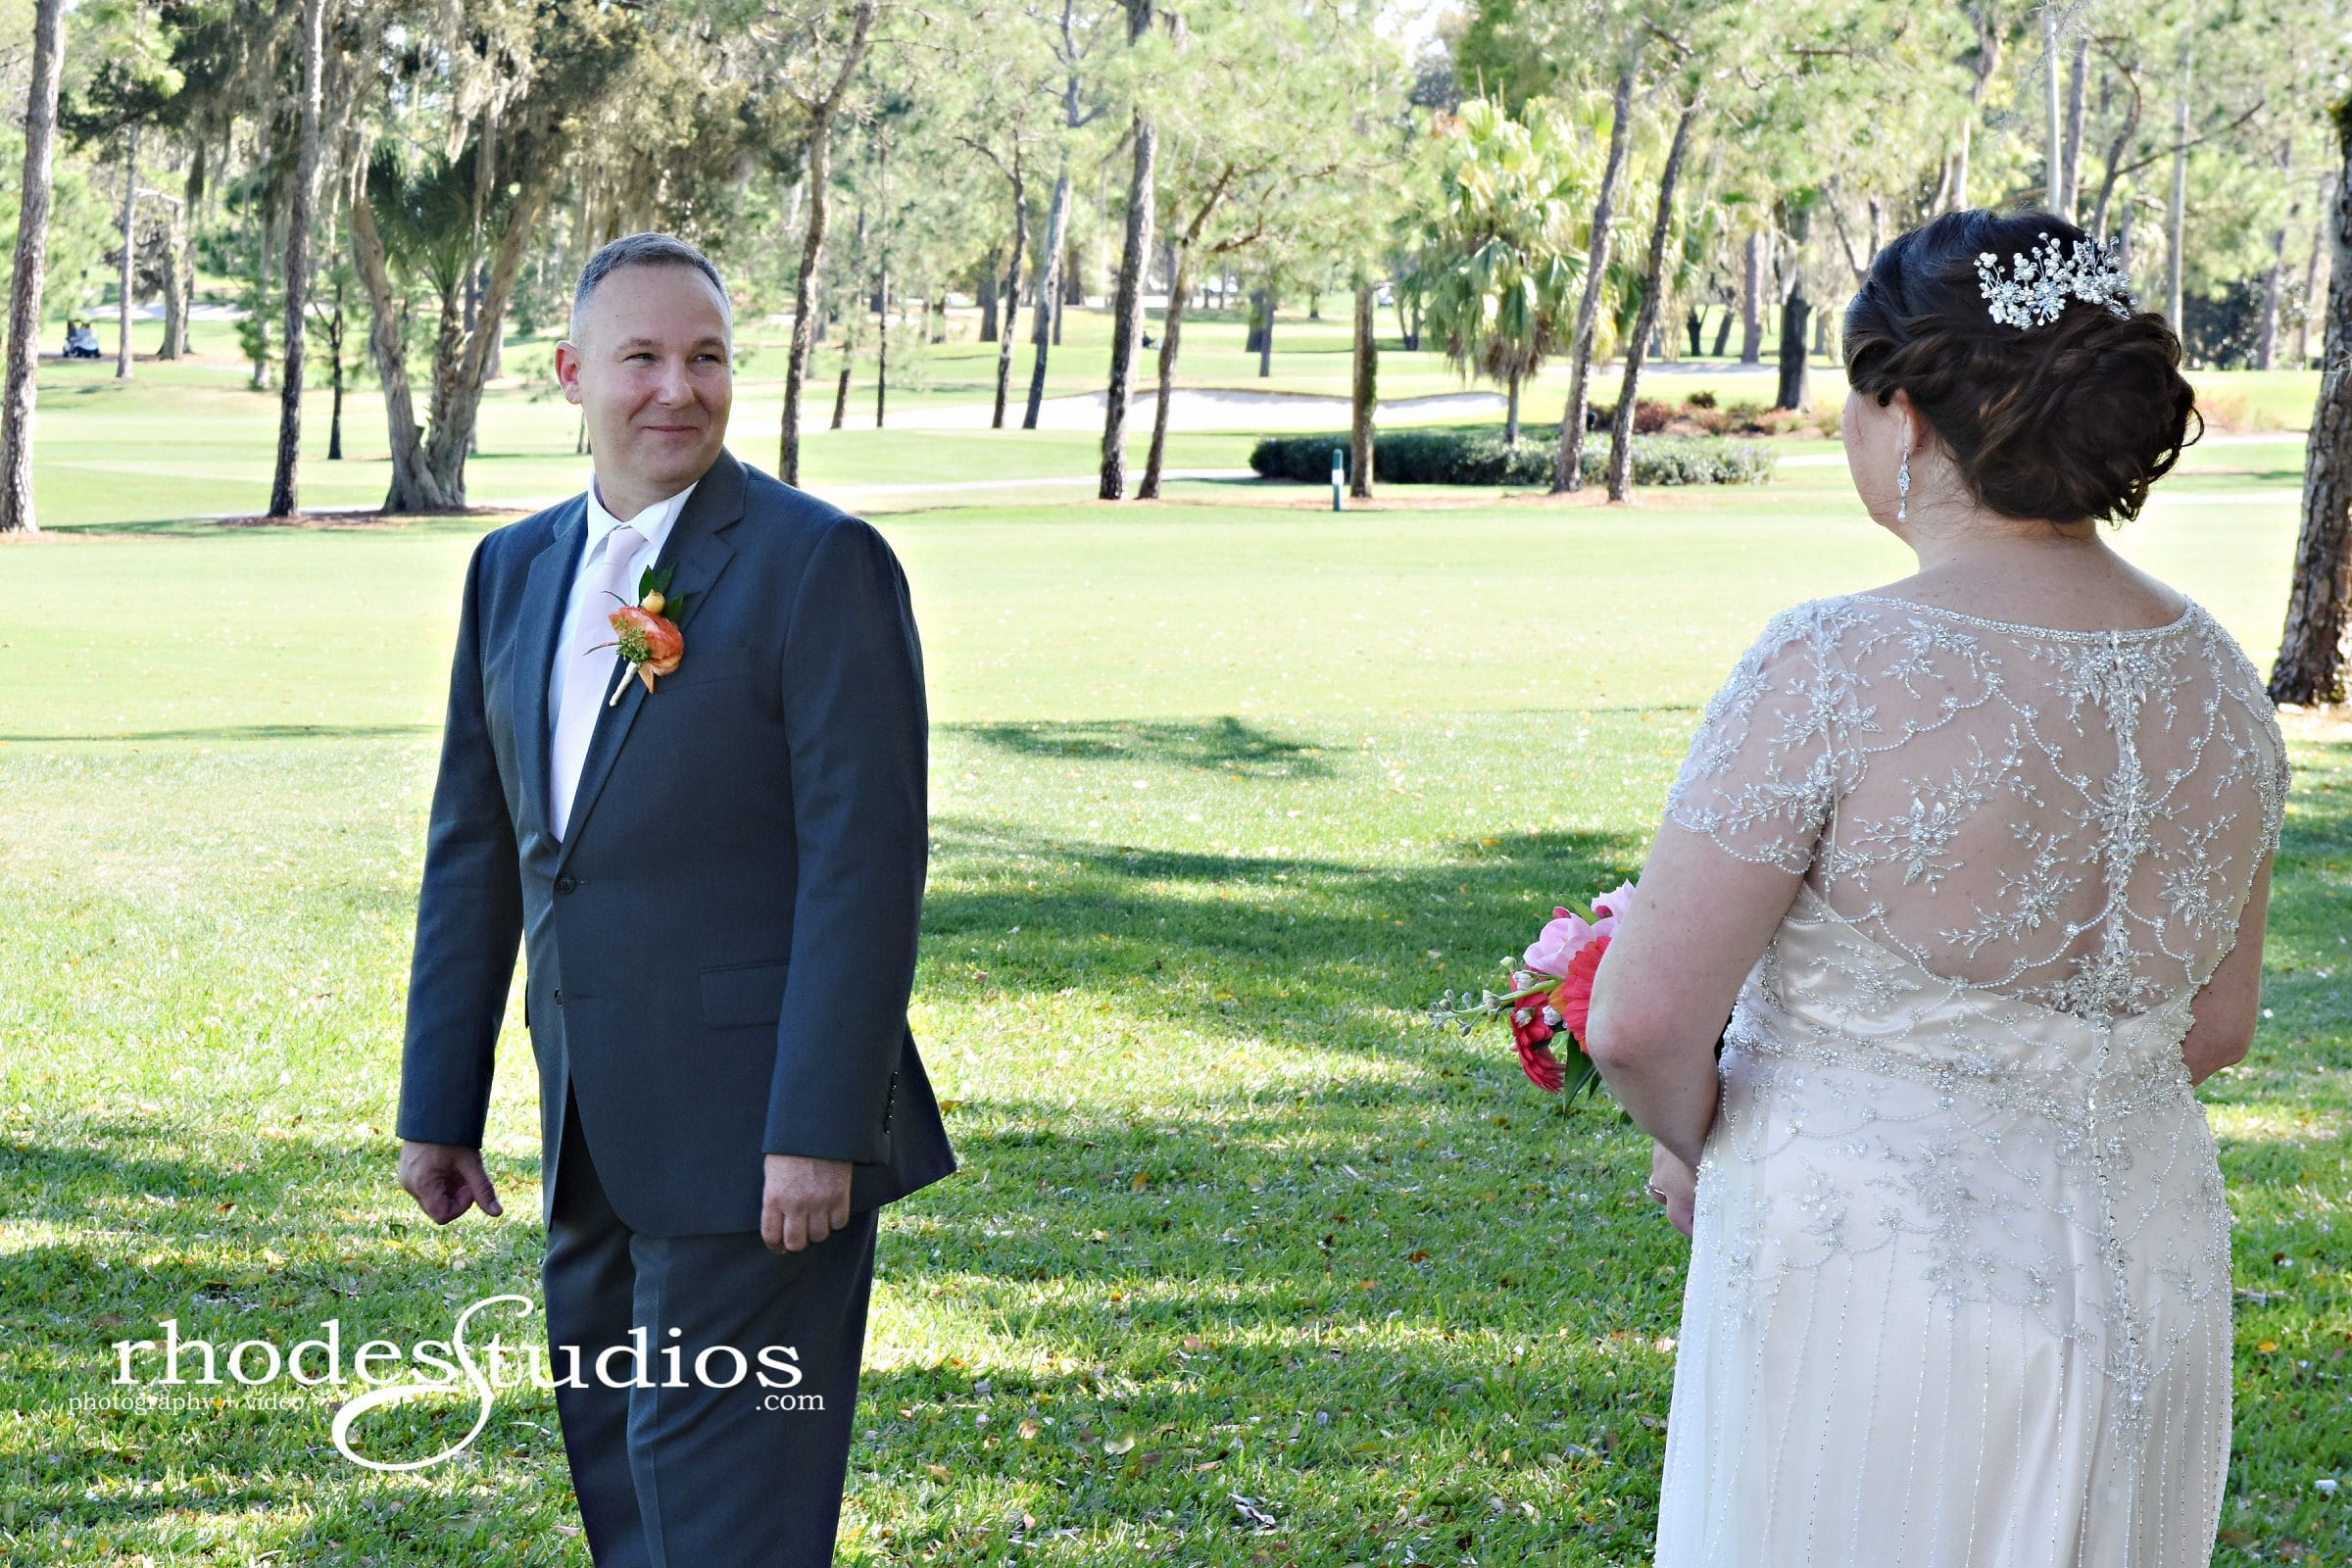 Groom turning around to see bride for first time